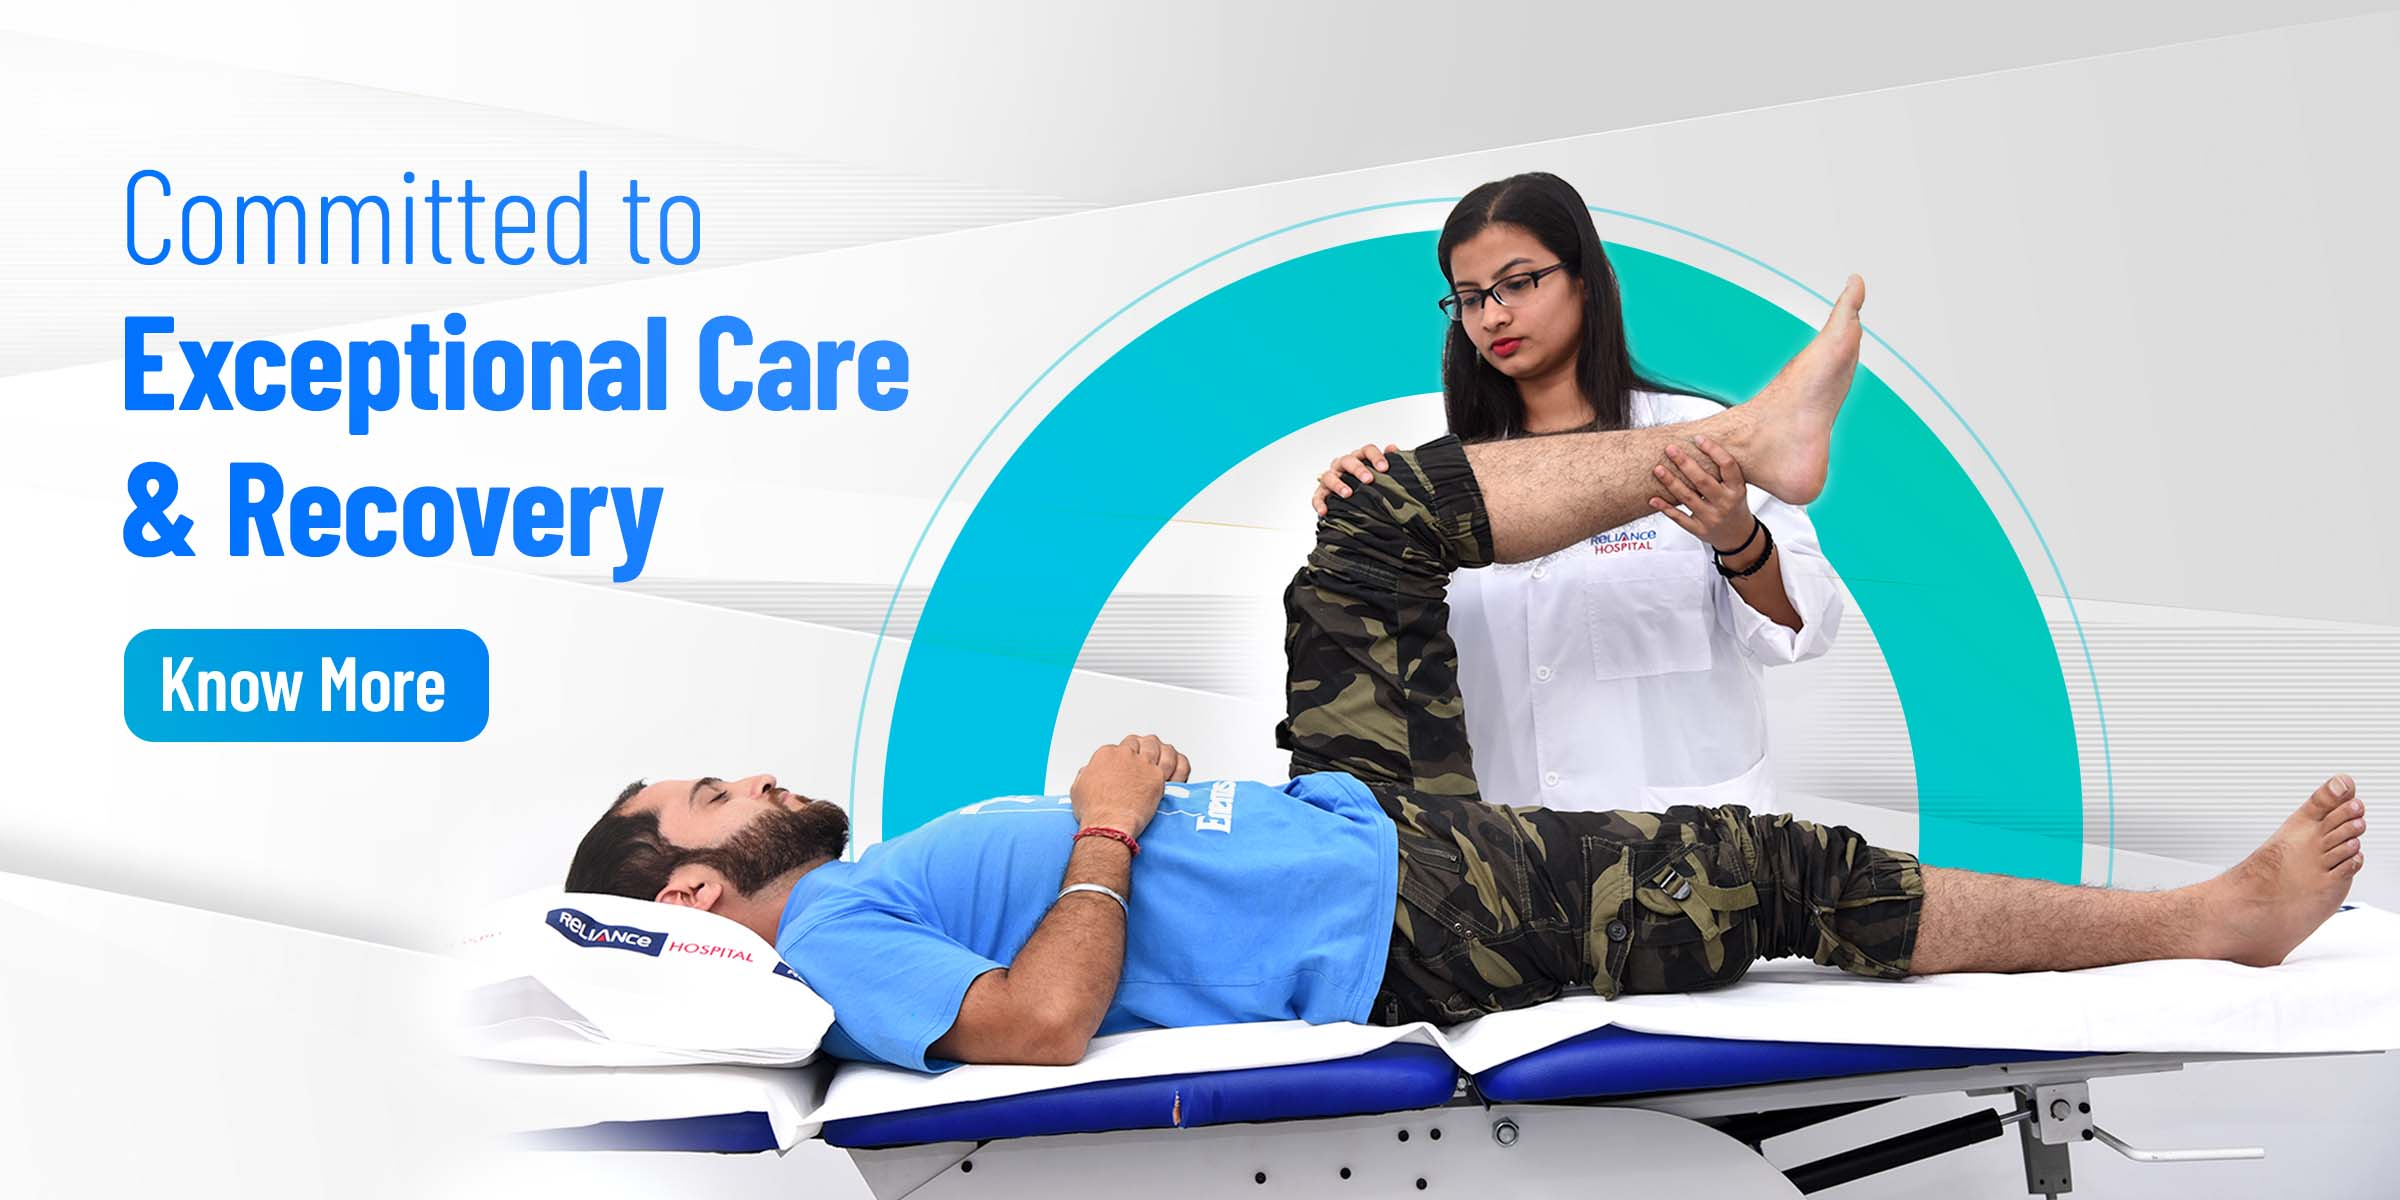 Department of Orthopaedics - Best Hospital in Navi Mumbai